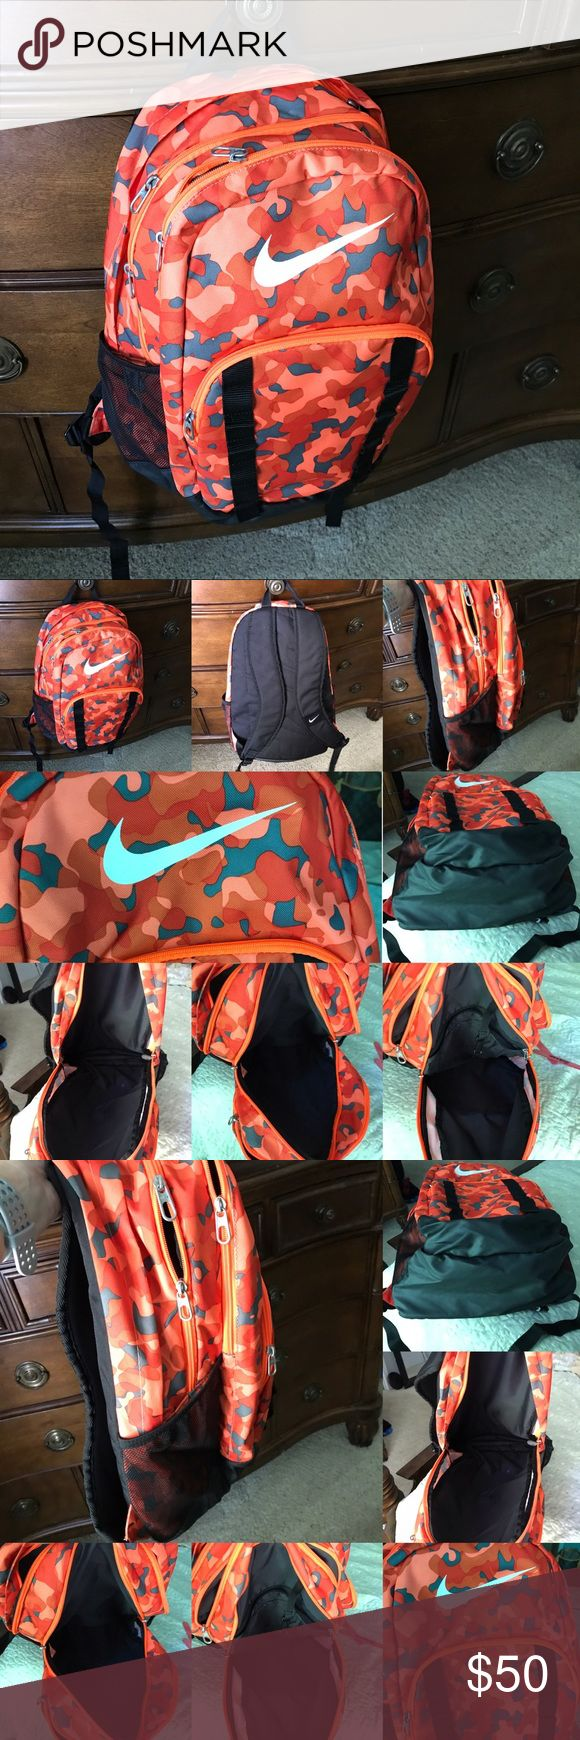 Nike Brasilia 7  Xl Backpack Orange Camouflage Nike Brasilia 7 Orange Black Graphic Xl Backpack Shoulder Bag Camo, EXCELLENT like new condition. Extra large 21 x 15. Nike Bags Shoulder Bags